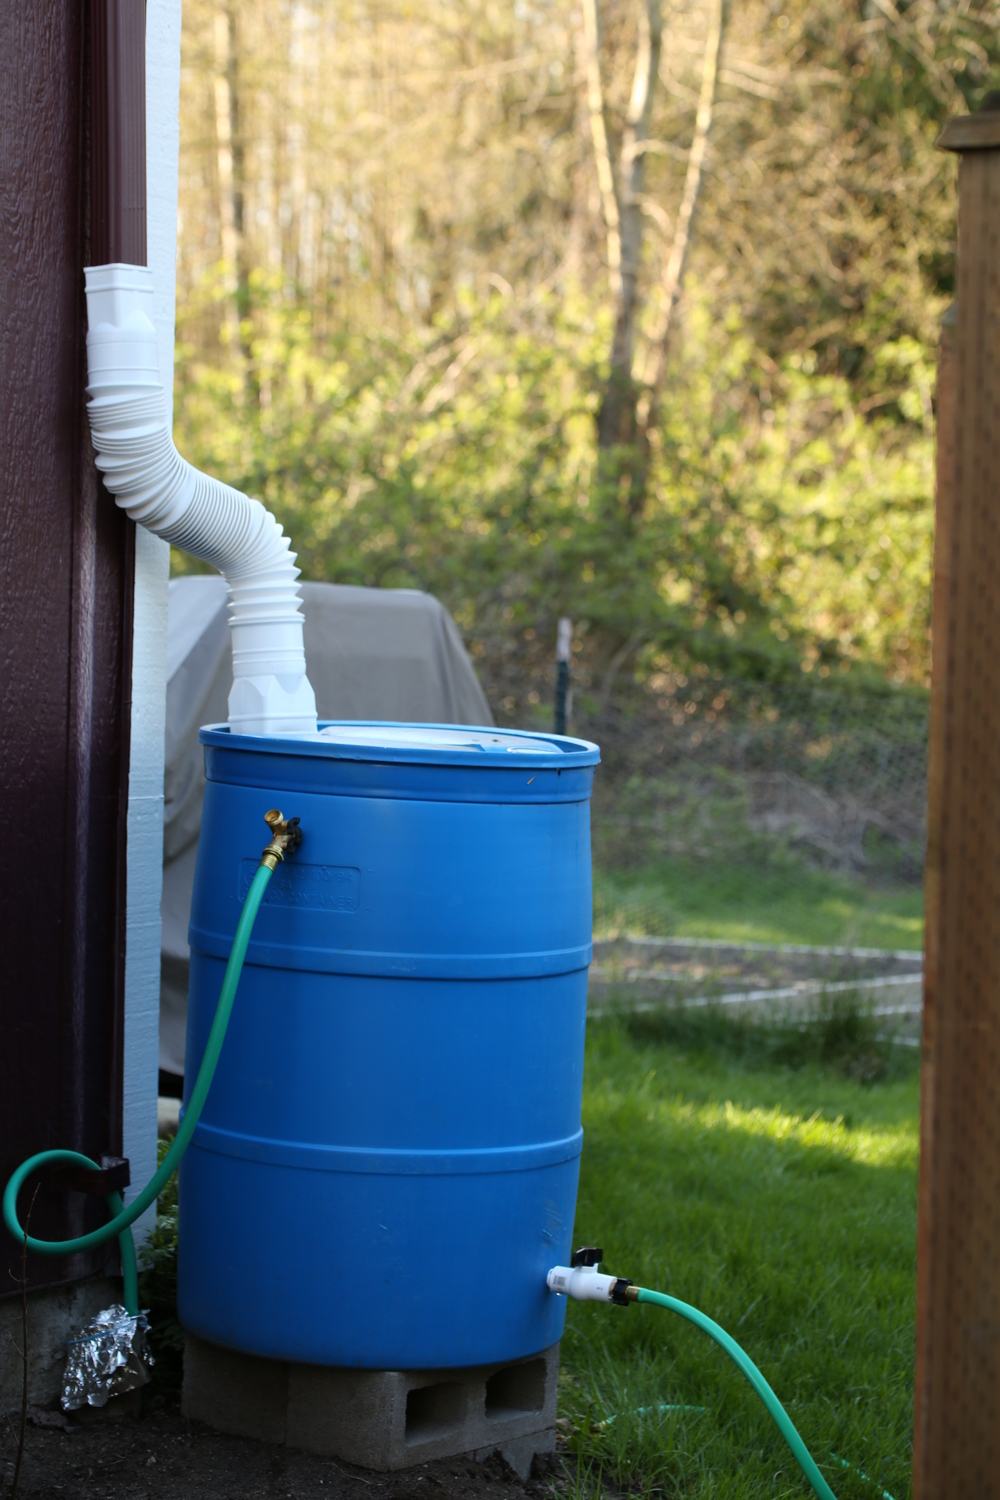 A rain barrel set up under a home's rain gutter